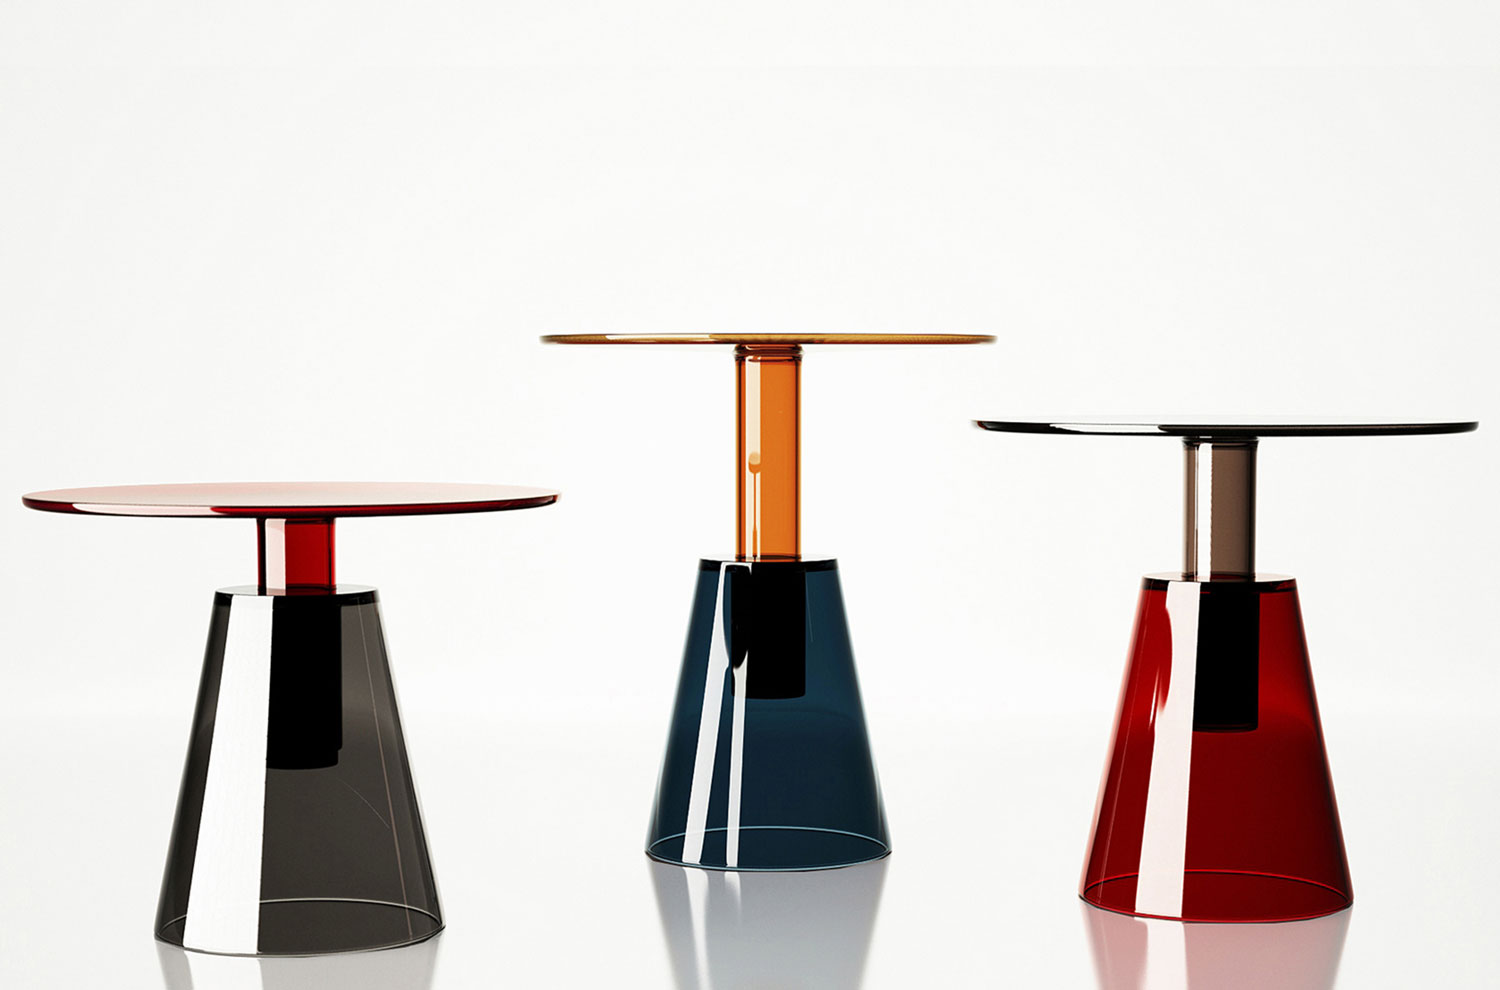 ILIA Low Tables by Christophe Pillet for ENNE at Maison & Objet 2015 | Yellowtrace